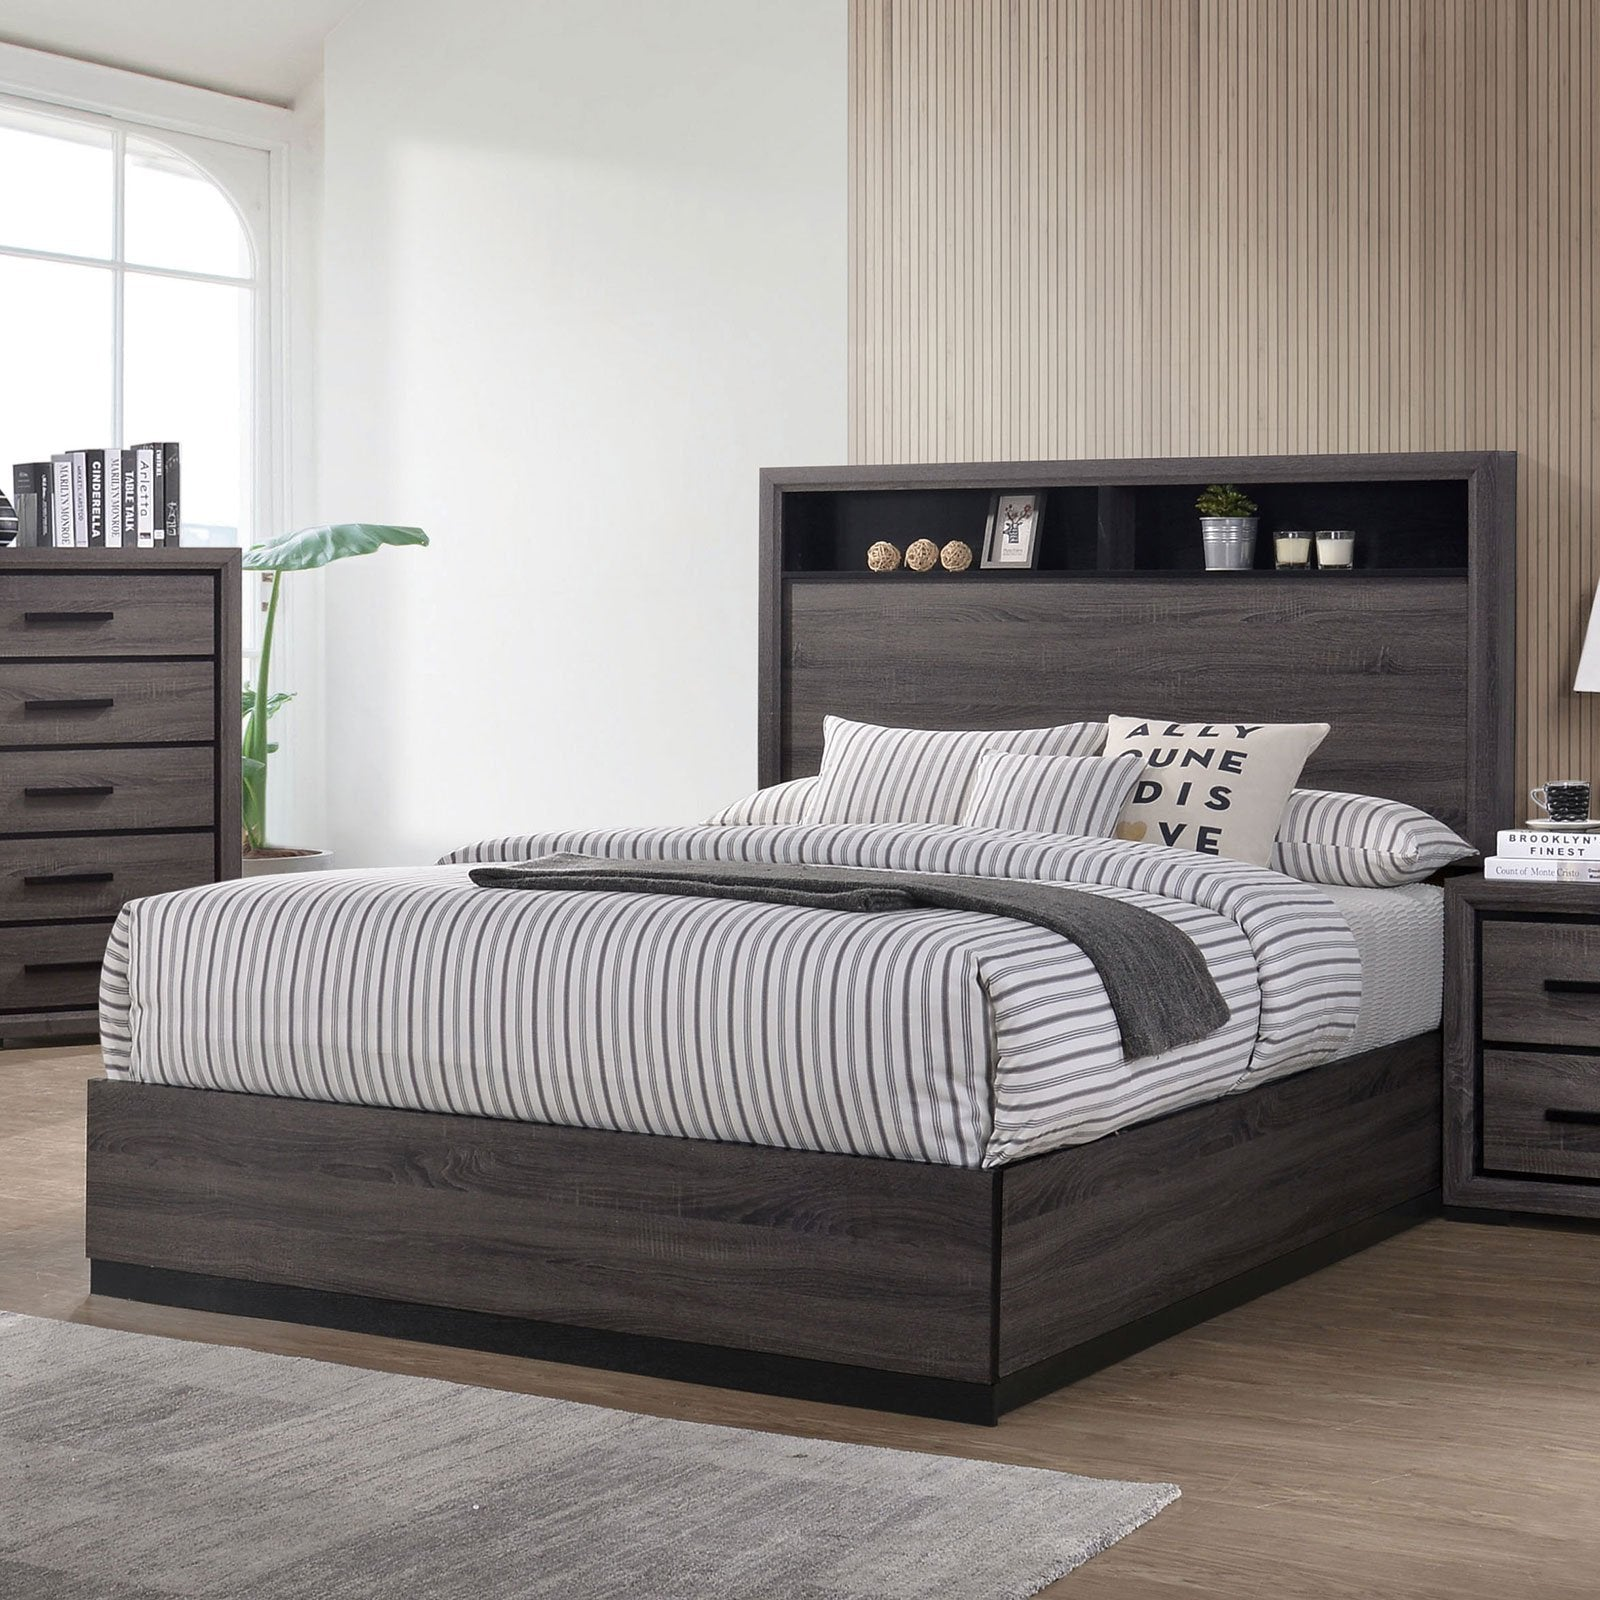 Conway Queen Bed (No Foundation) - InteriorDesignsToGo.com